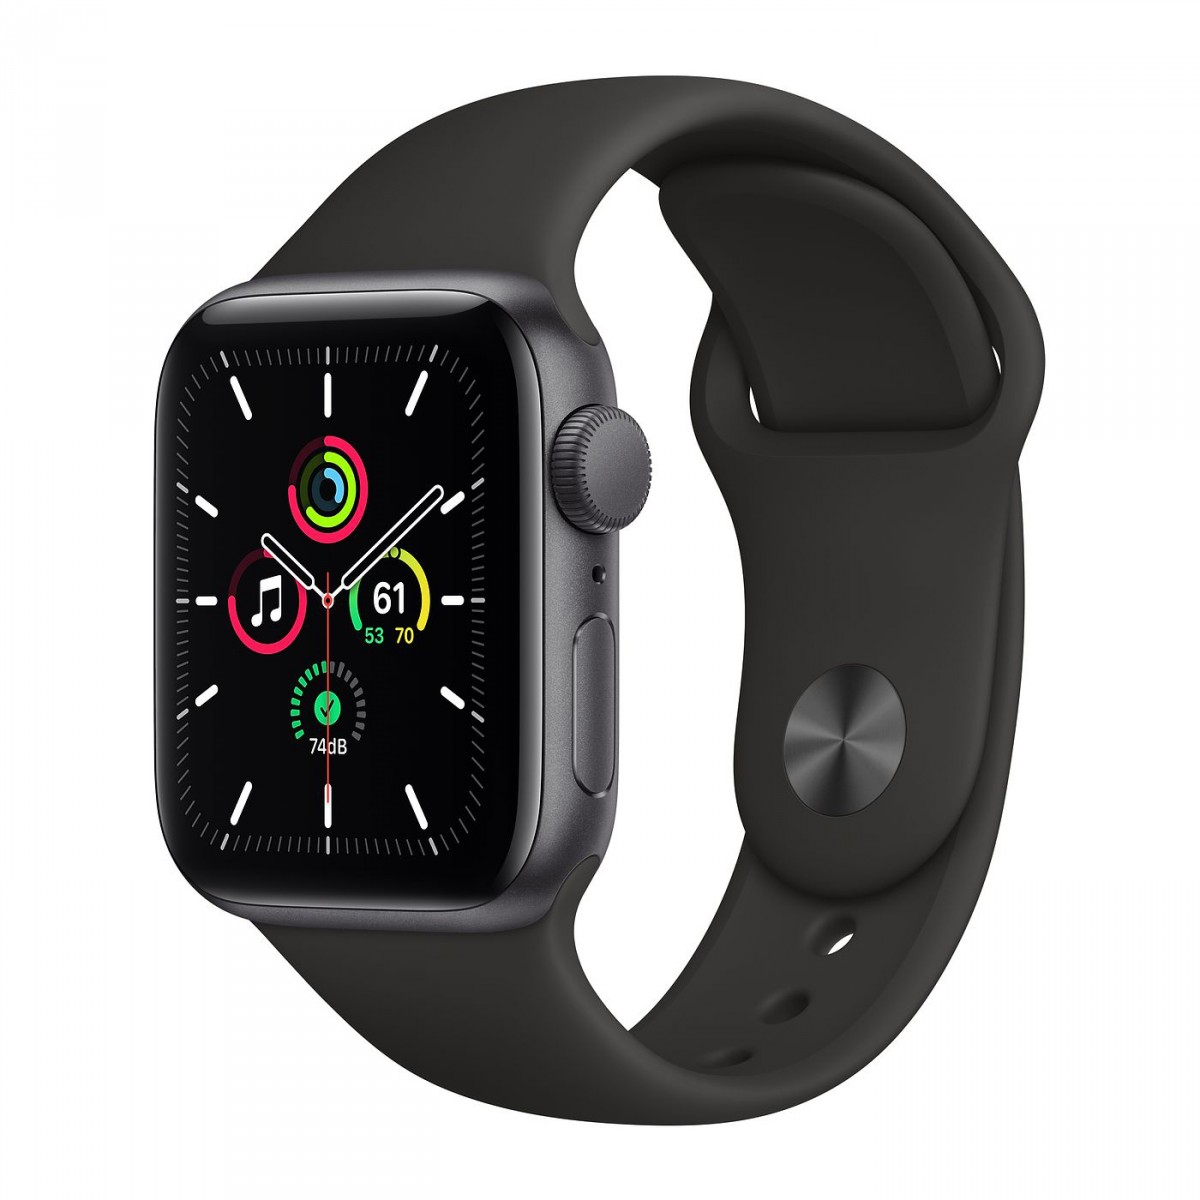 Apple Watch SE 40mm GPS Space Gray Aluminum Case with Black Sport Band